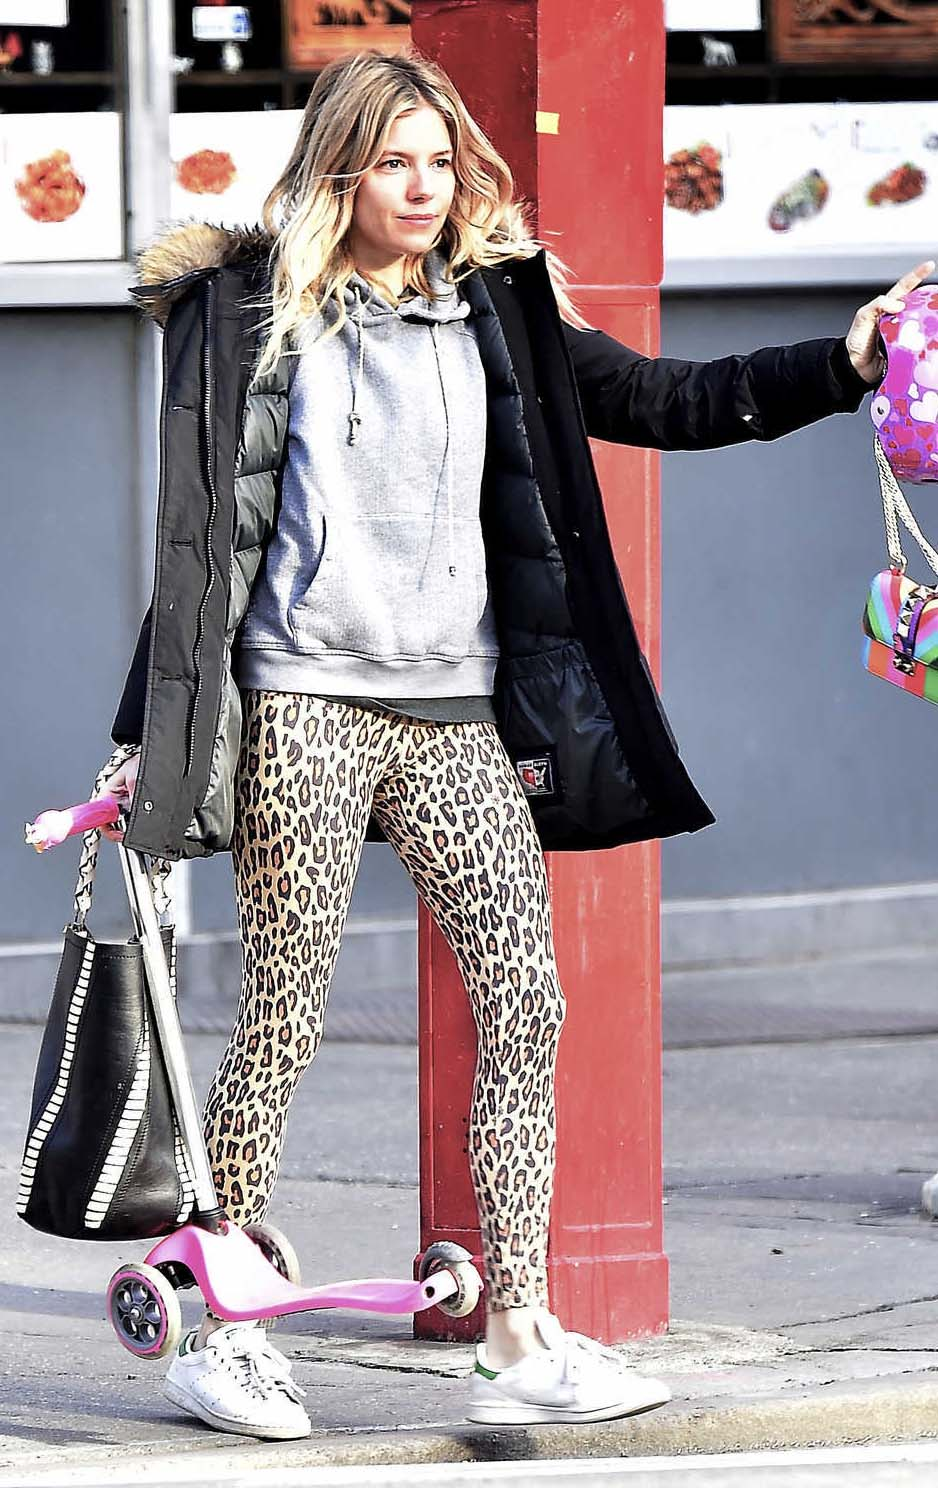 tan-leggings-leopard-grayl-sweater-sweatshirt-hoodie-black-jacket-coat-white-shoe-sneakers-siennamiller-fall-winter-blonde-weekend.jpg